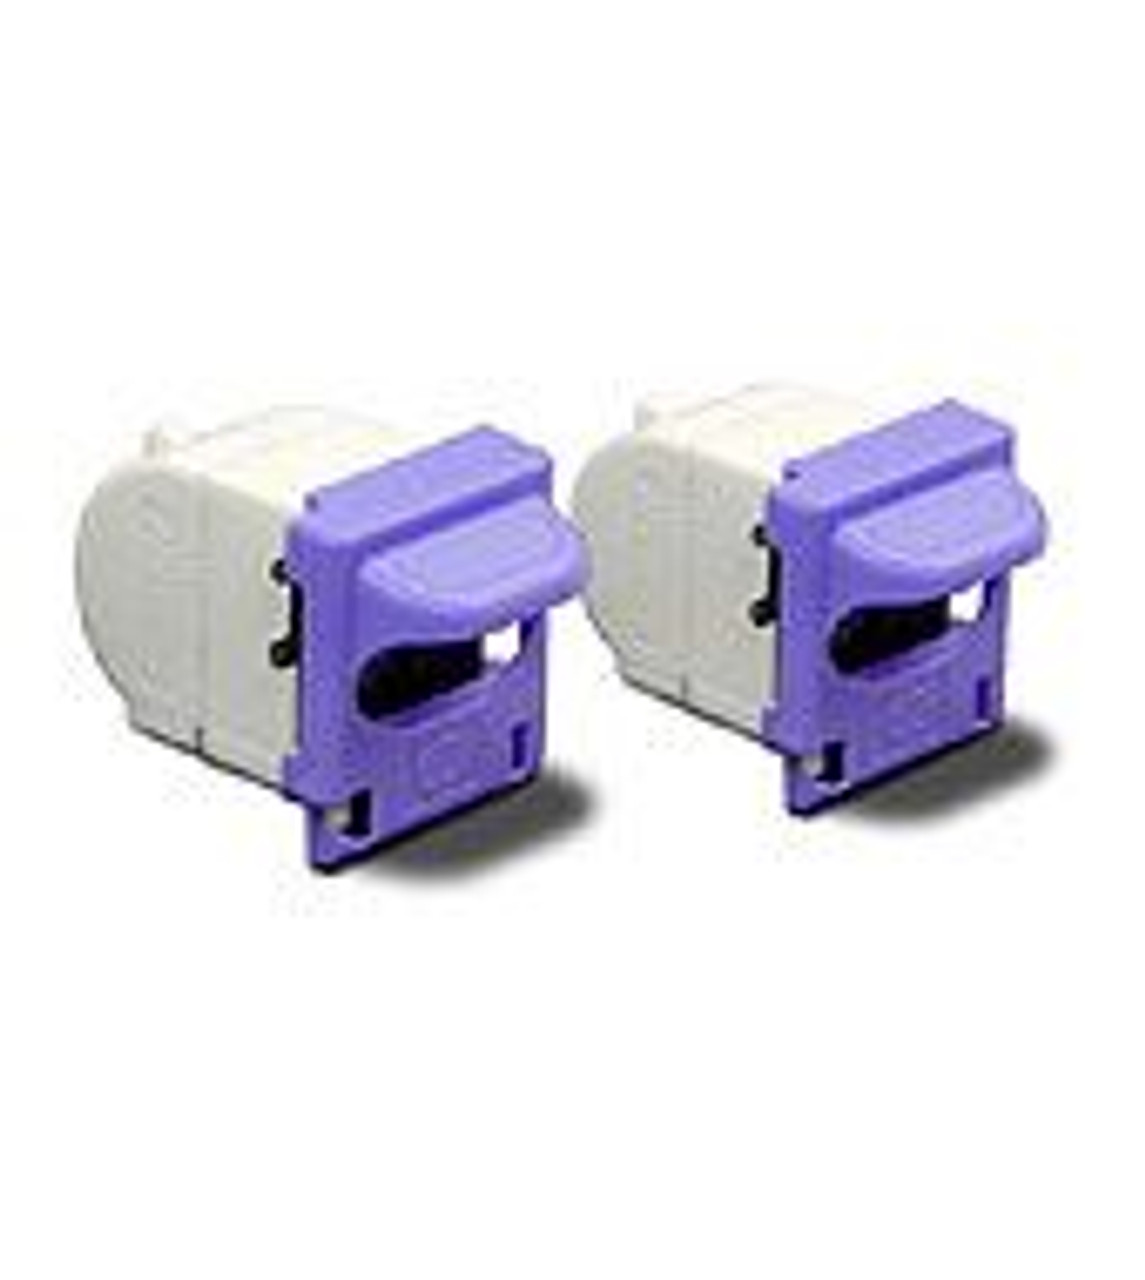 Image for HP Staple Cartridge Pack (Q7432A) CX Computer Superstore